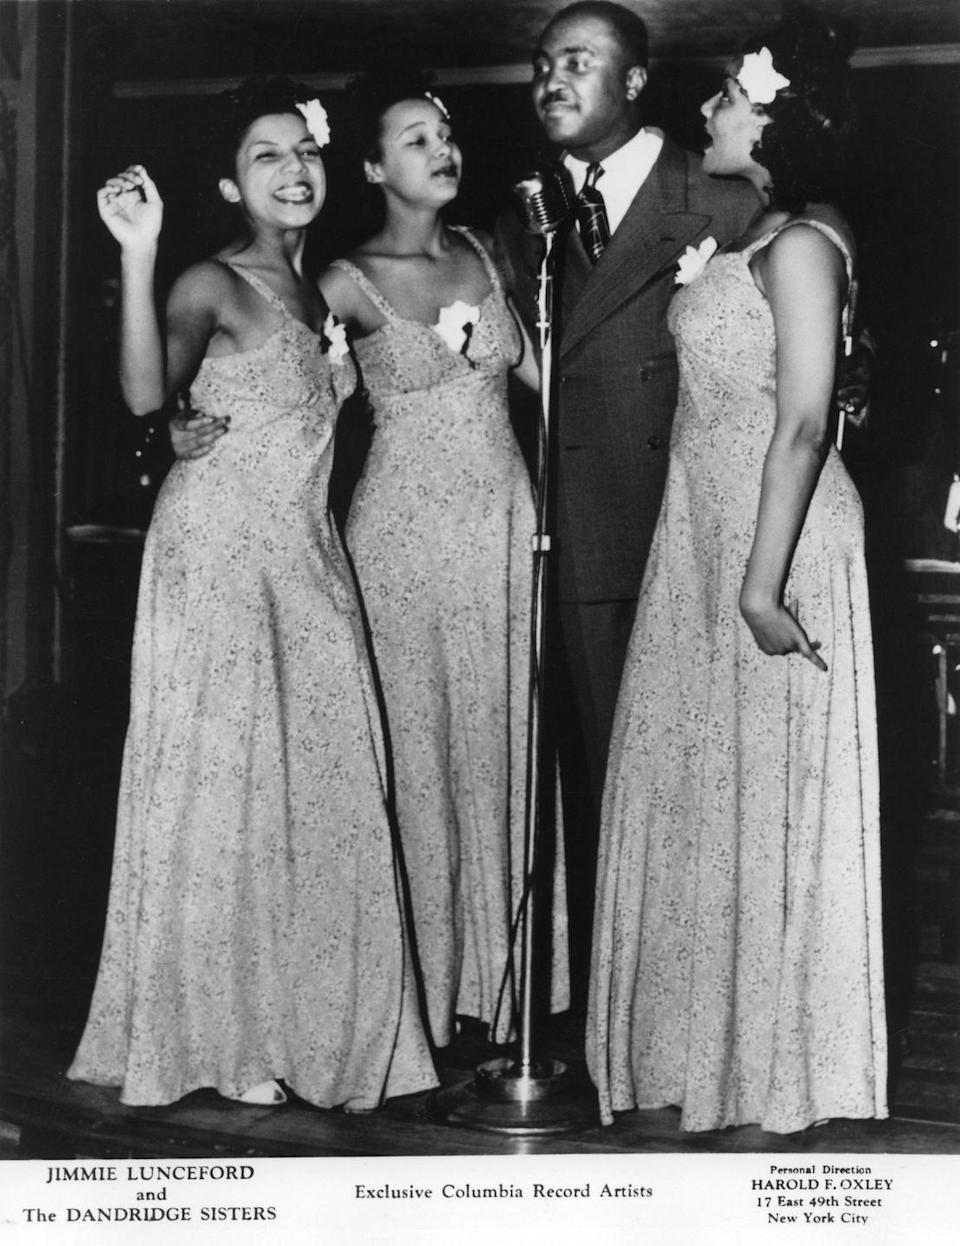 <p>The Dandridge Sisters were a success. Soon, they became a fixture at clubs across the country and began opening for acts like Cab Calloway and Jimmie Lunceford (pictured).</p>